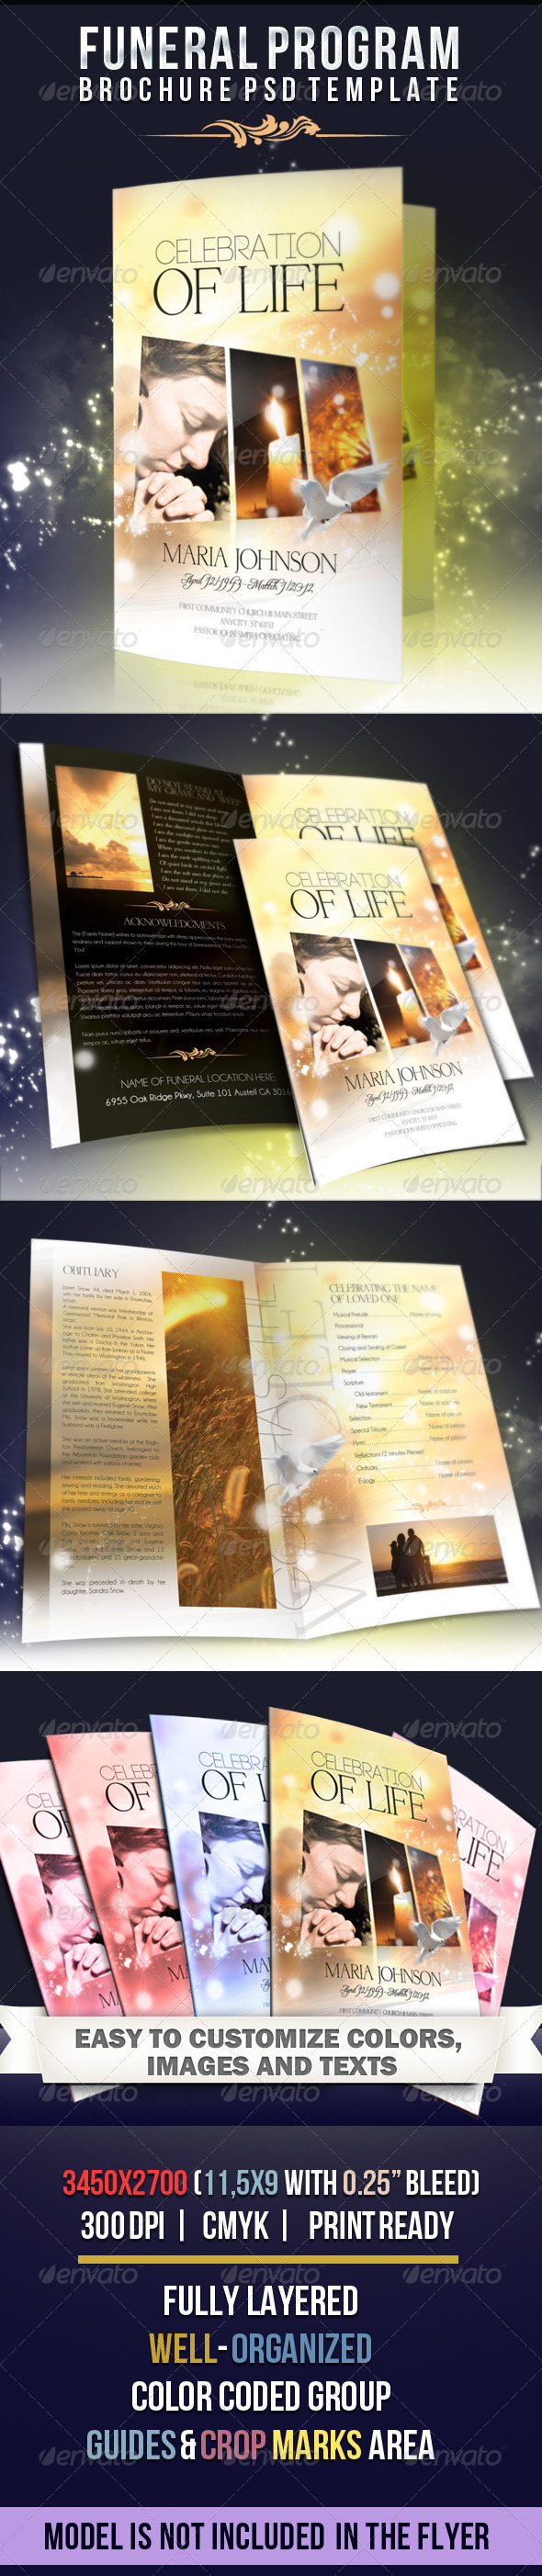 Celebration of life - Funeral Program Brochure Template - Brochures Print Templates